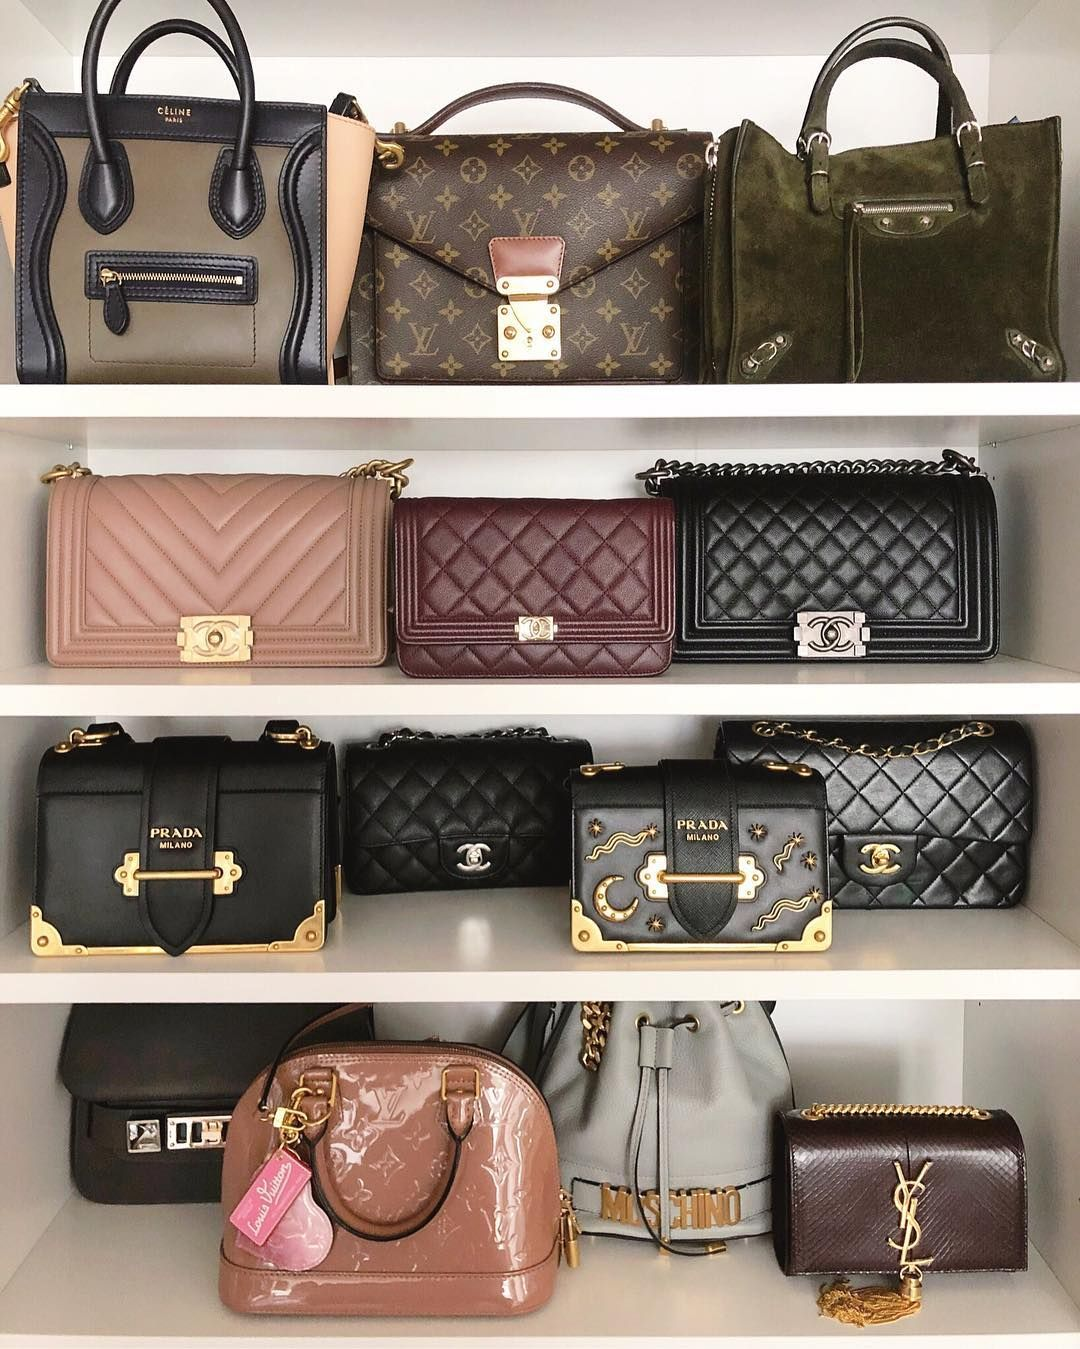 Designer Handbag Collection Celine Tricolor Nano Vintage Louis Vuitton Monogram Monceau Chanel Burgundy Boy Woc Wa Bags Chanel Chevron Vintage Louis Vuitton